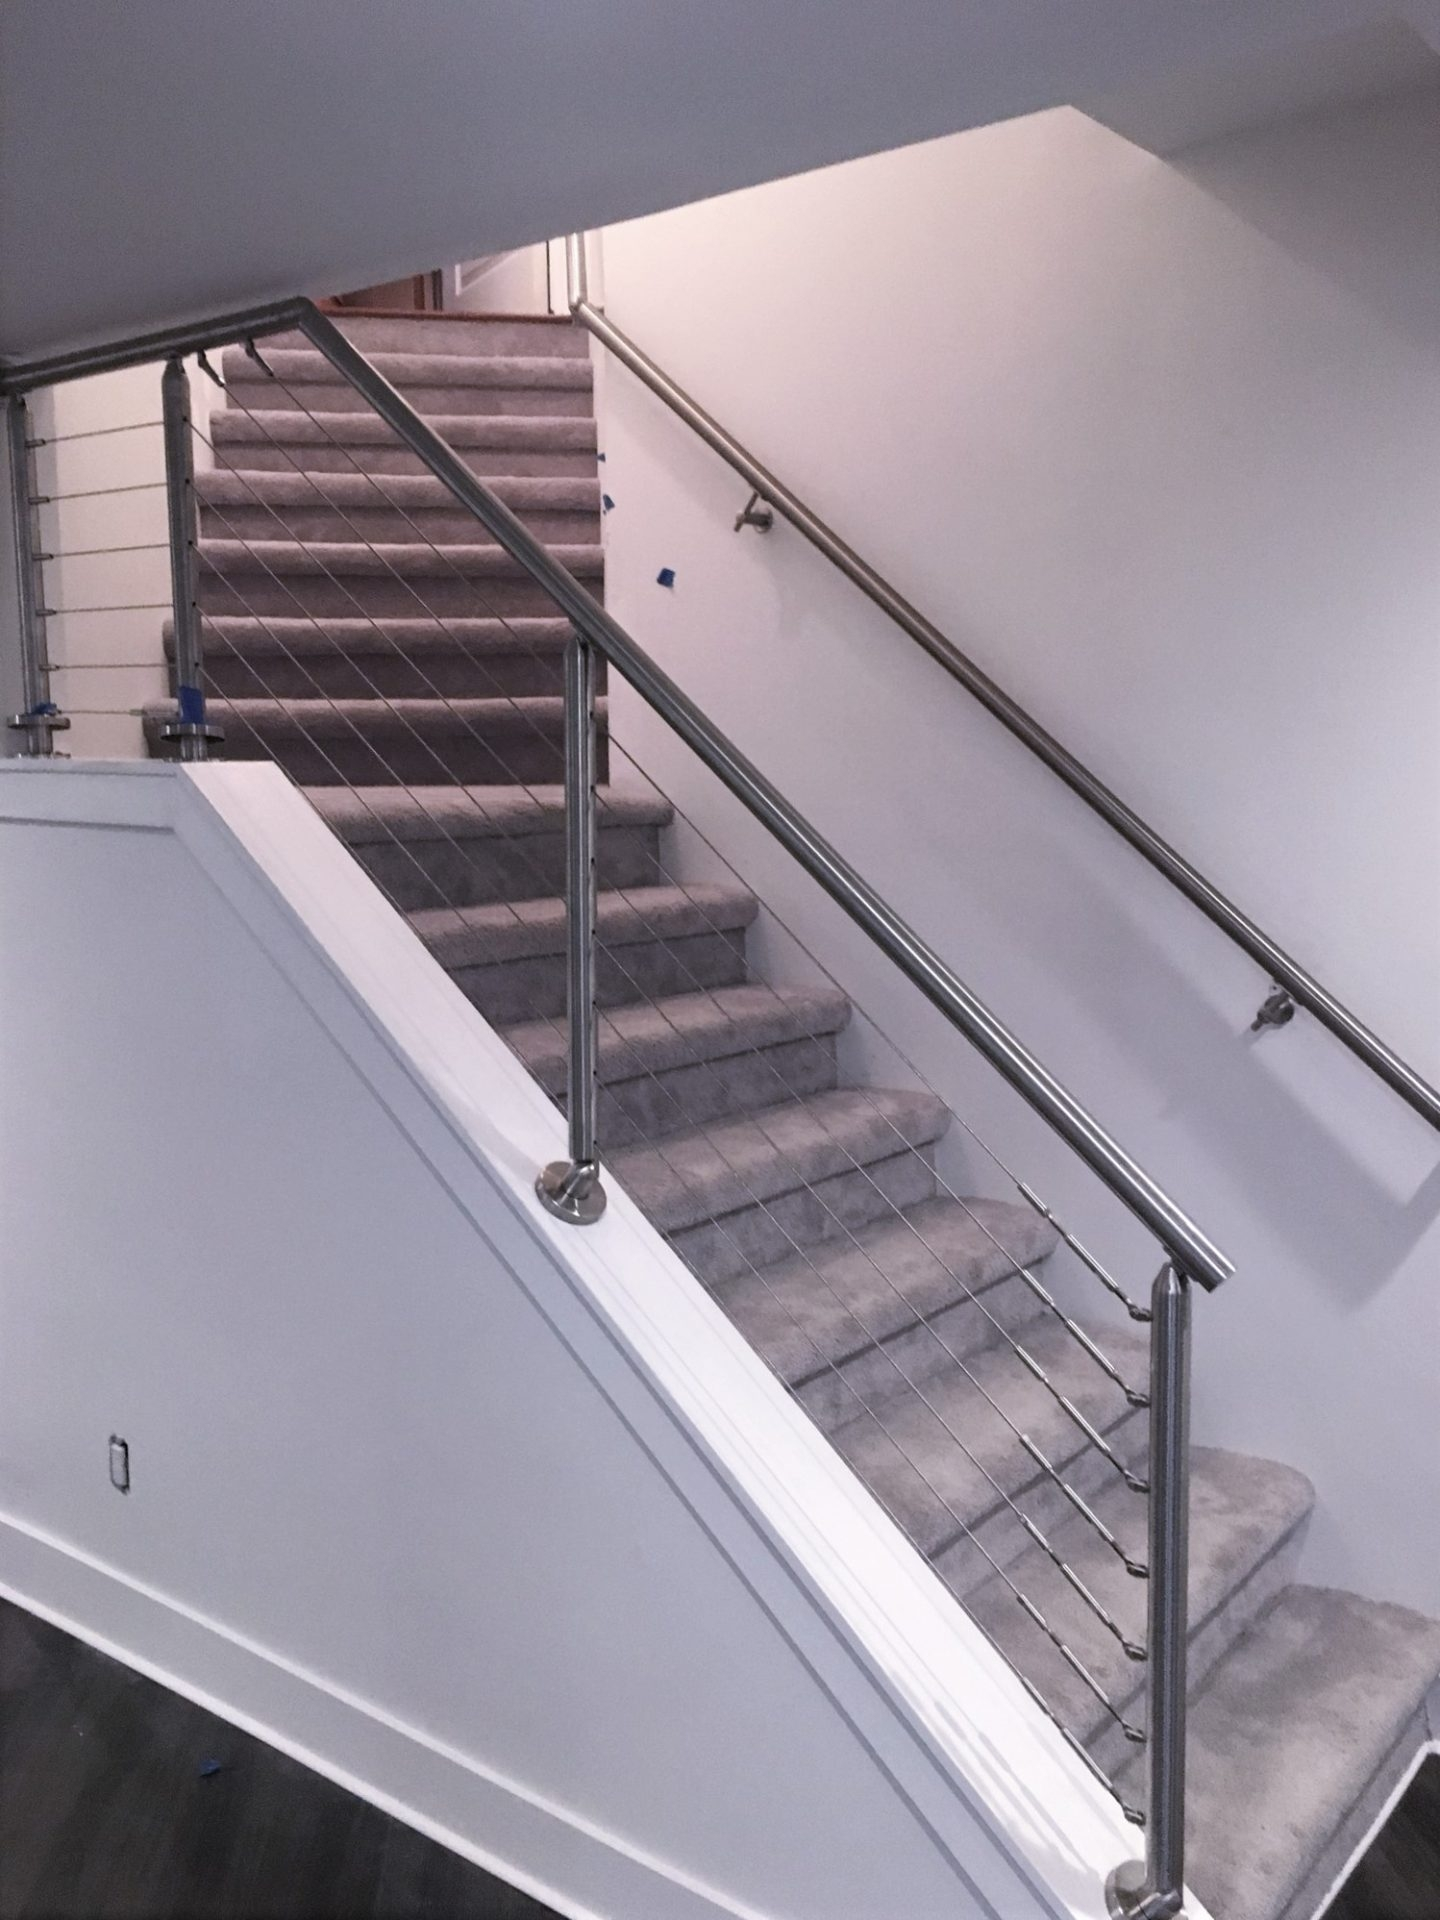 Stainless Steel Cable Railing Kit Great Lakes Metal Fabrication   Stainless Steel Handrails Near Me   Glass Railing Systems   Staircase Railing   Stair Railing   Metal   Relaxdays Stainless